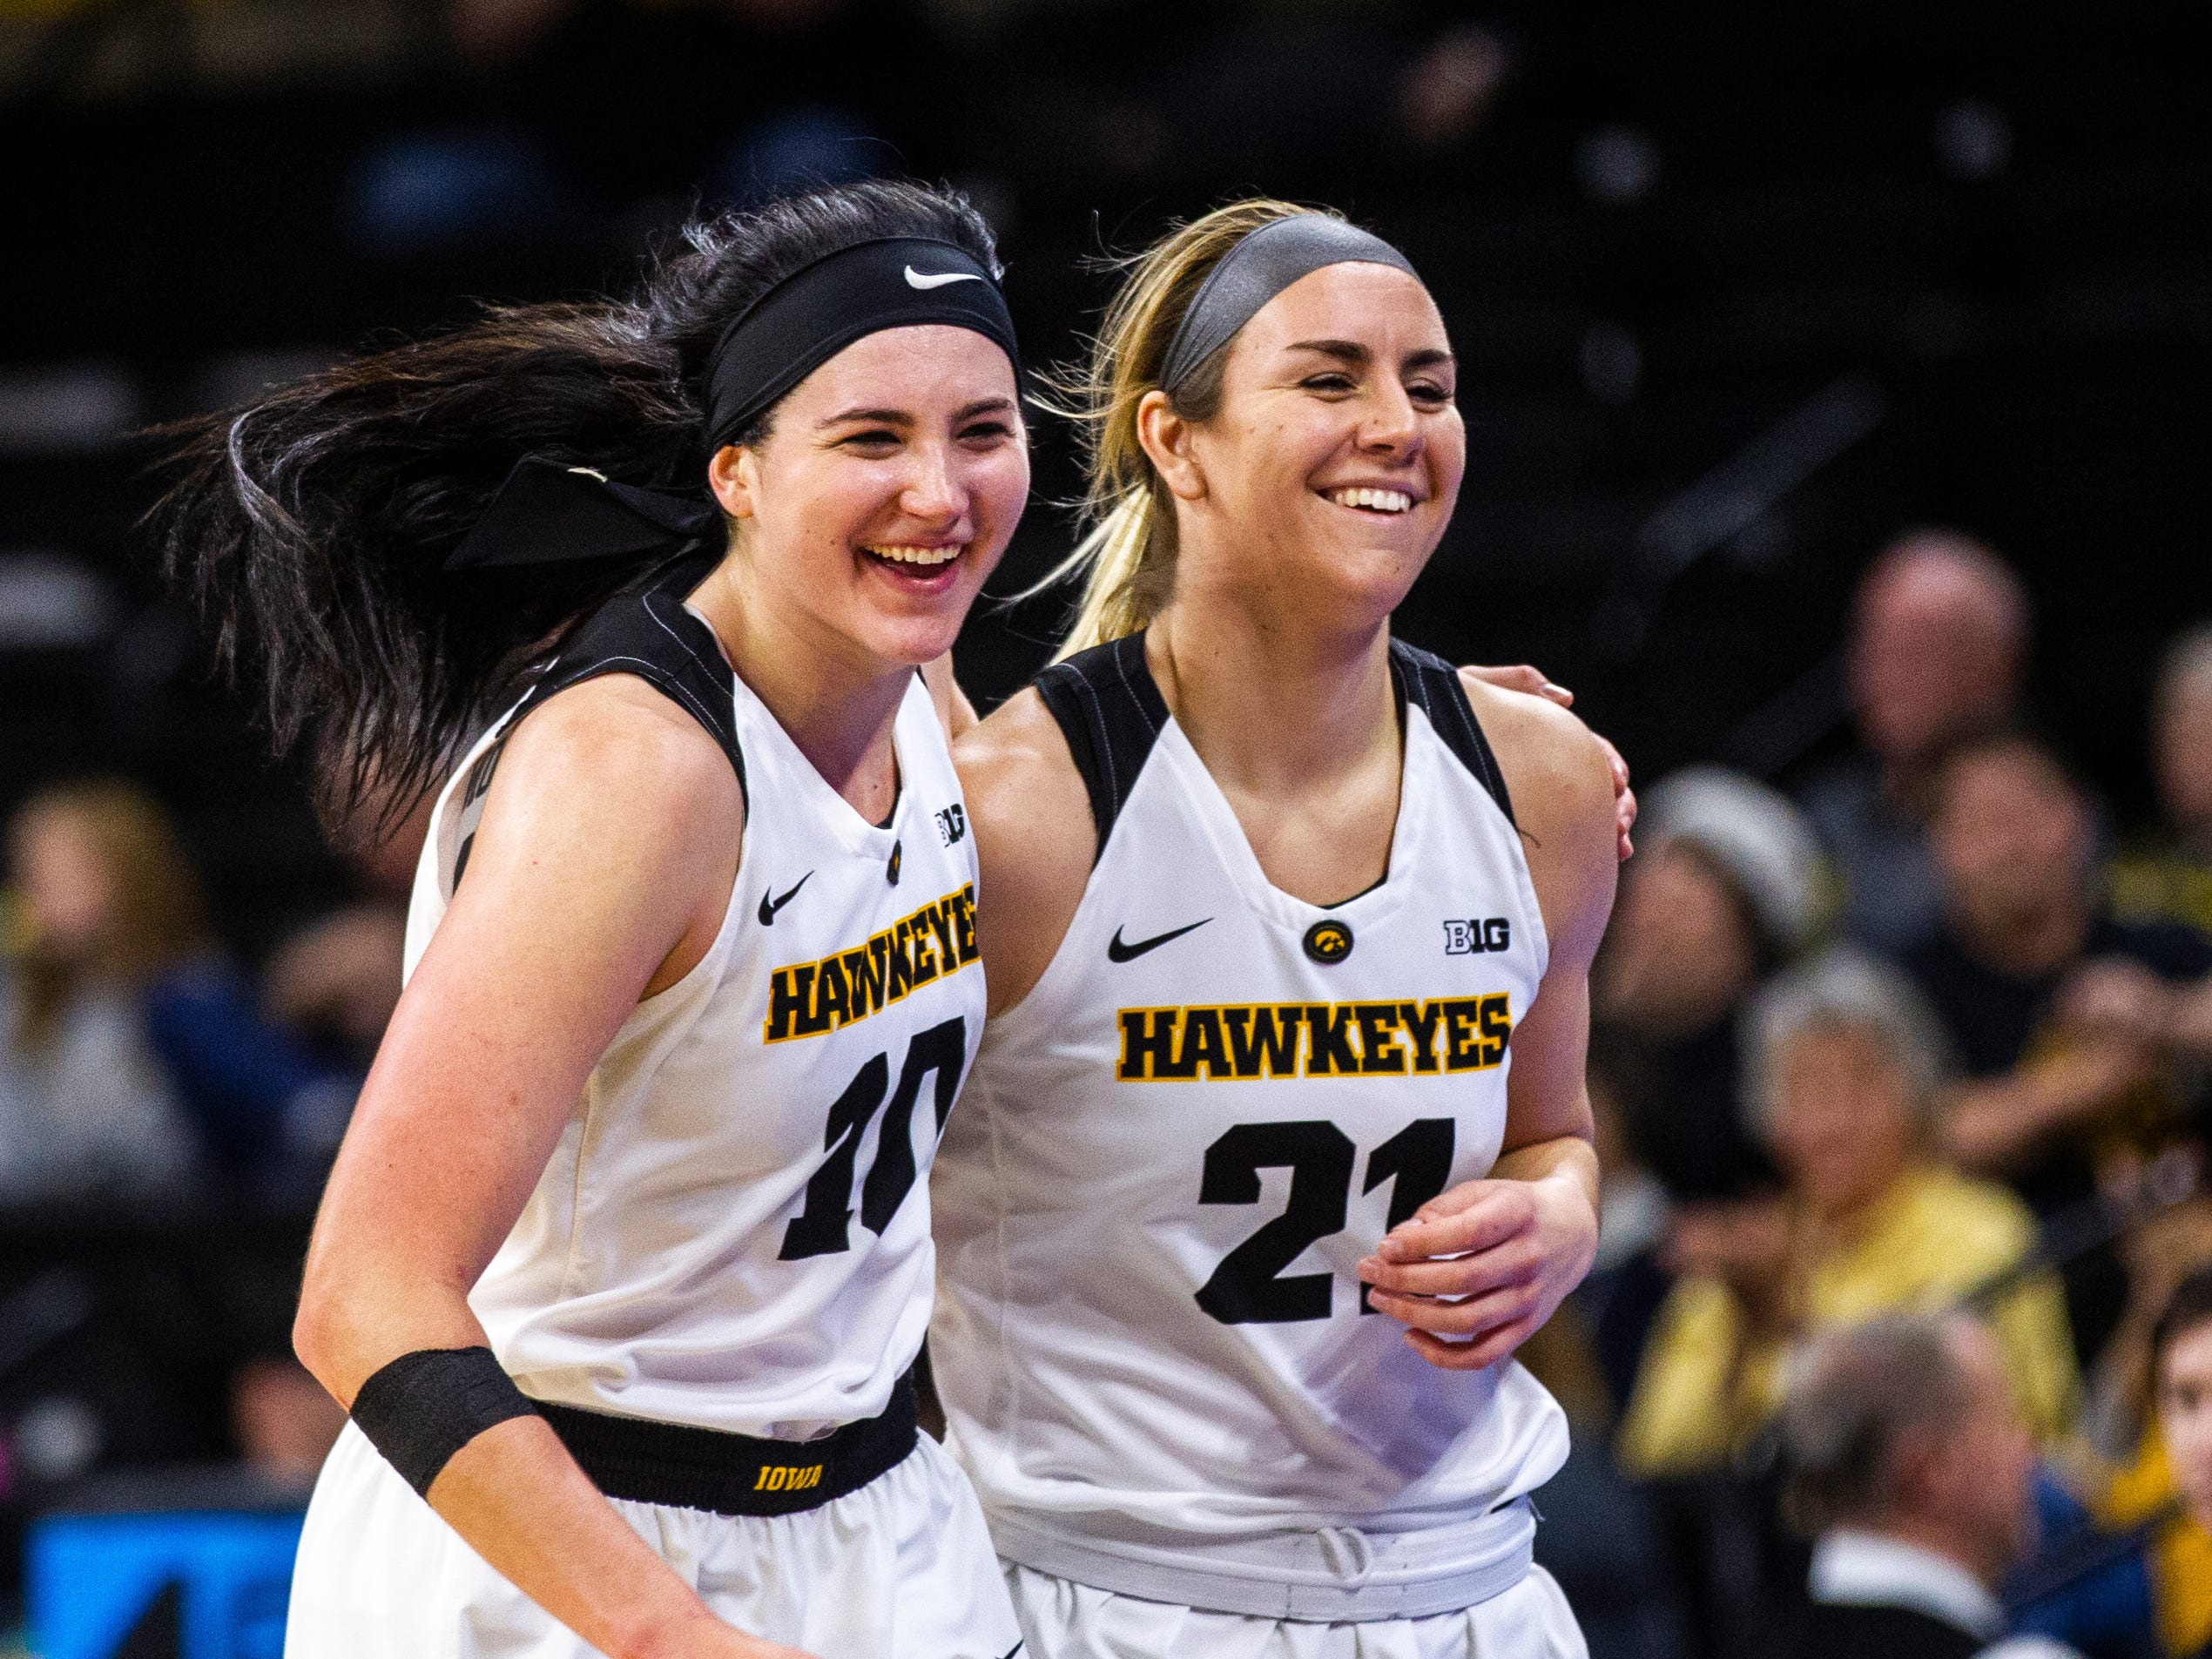 Iowa forward Megan Gustafson (10) and Iowa forward Hannah Stewart (21) head to the bench during a NCAA women's basketball game on Saturday, Dec. 8, 2018, at Carver-Hawkeye Arena in Iowa City.